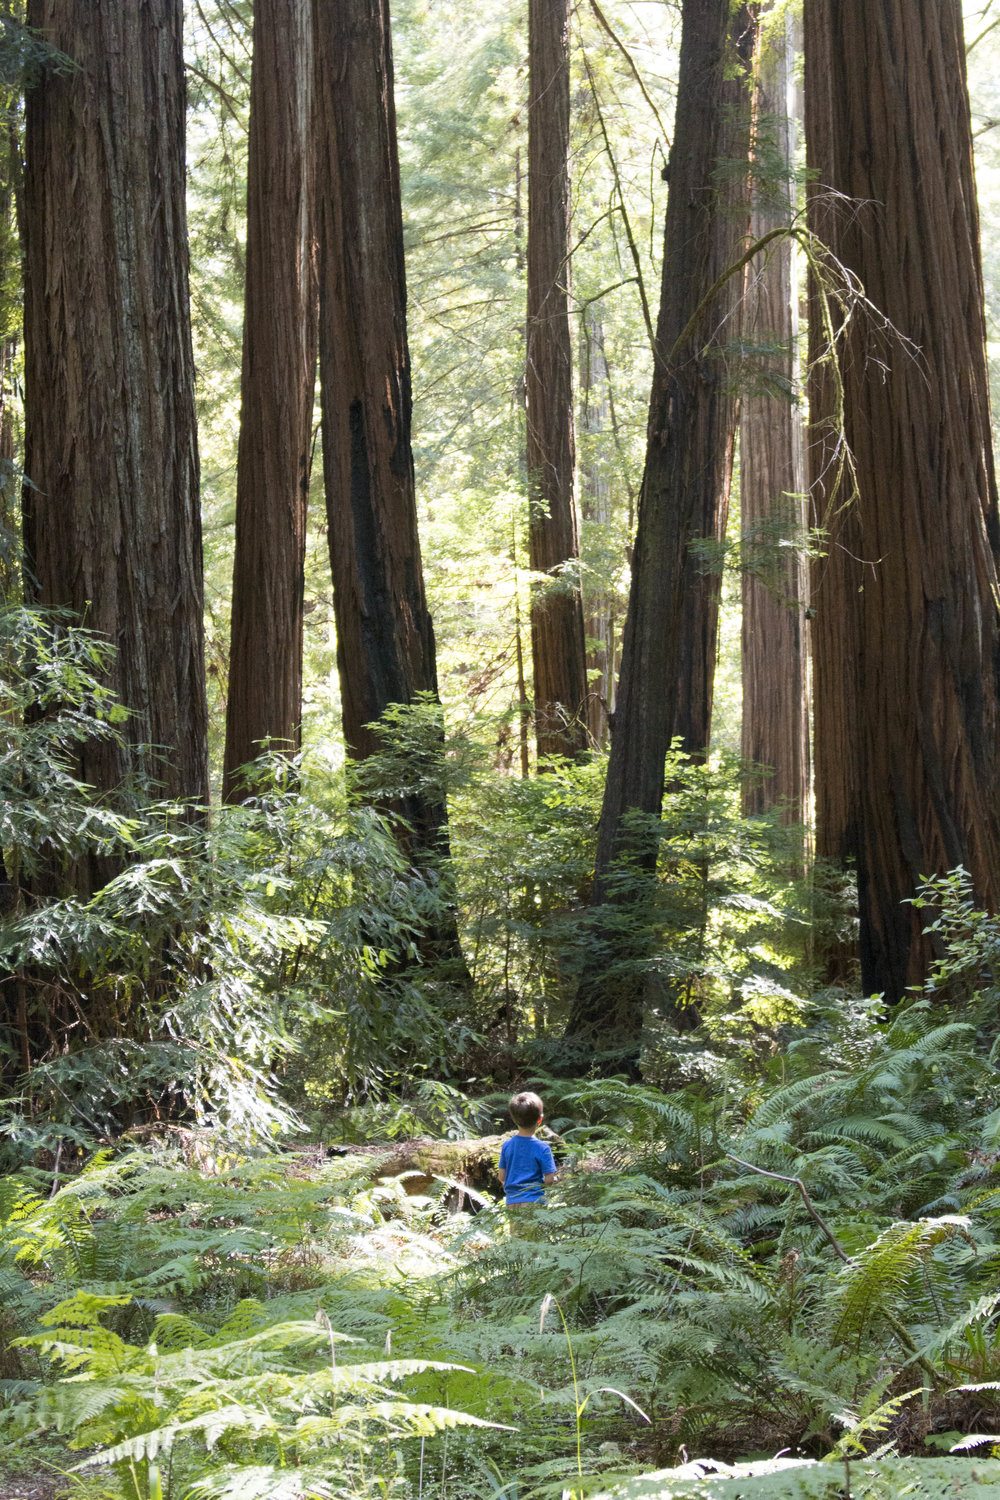 Return of the Jedi, E.T., and the upcoming A Wrinkle In Time were all shot in Northern California's picturesque redwoods.